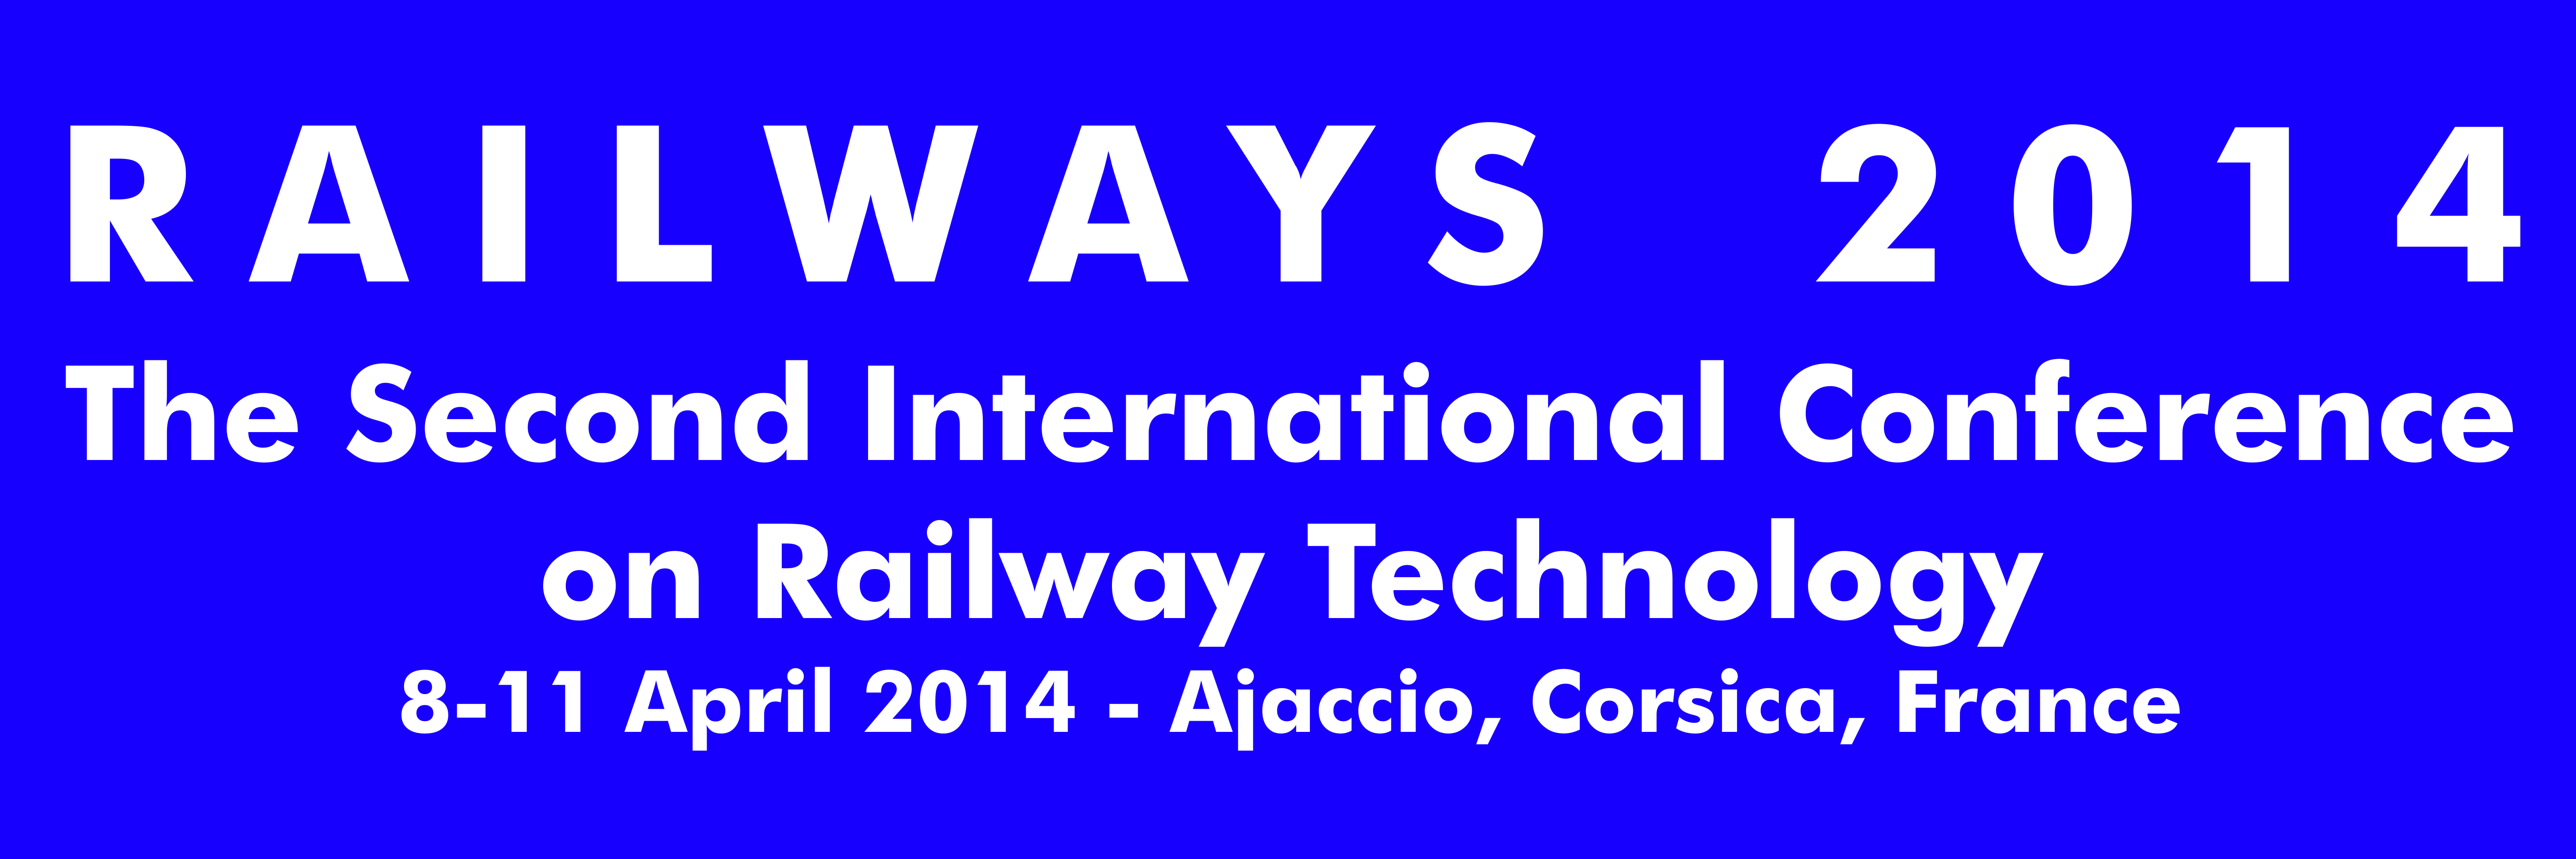 Railways 2014